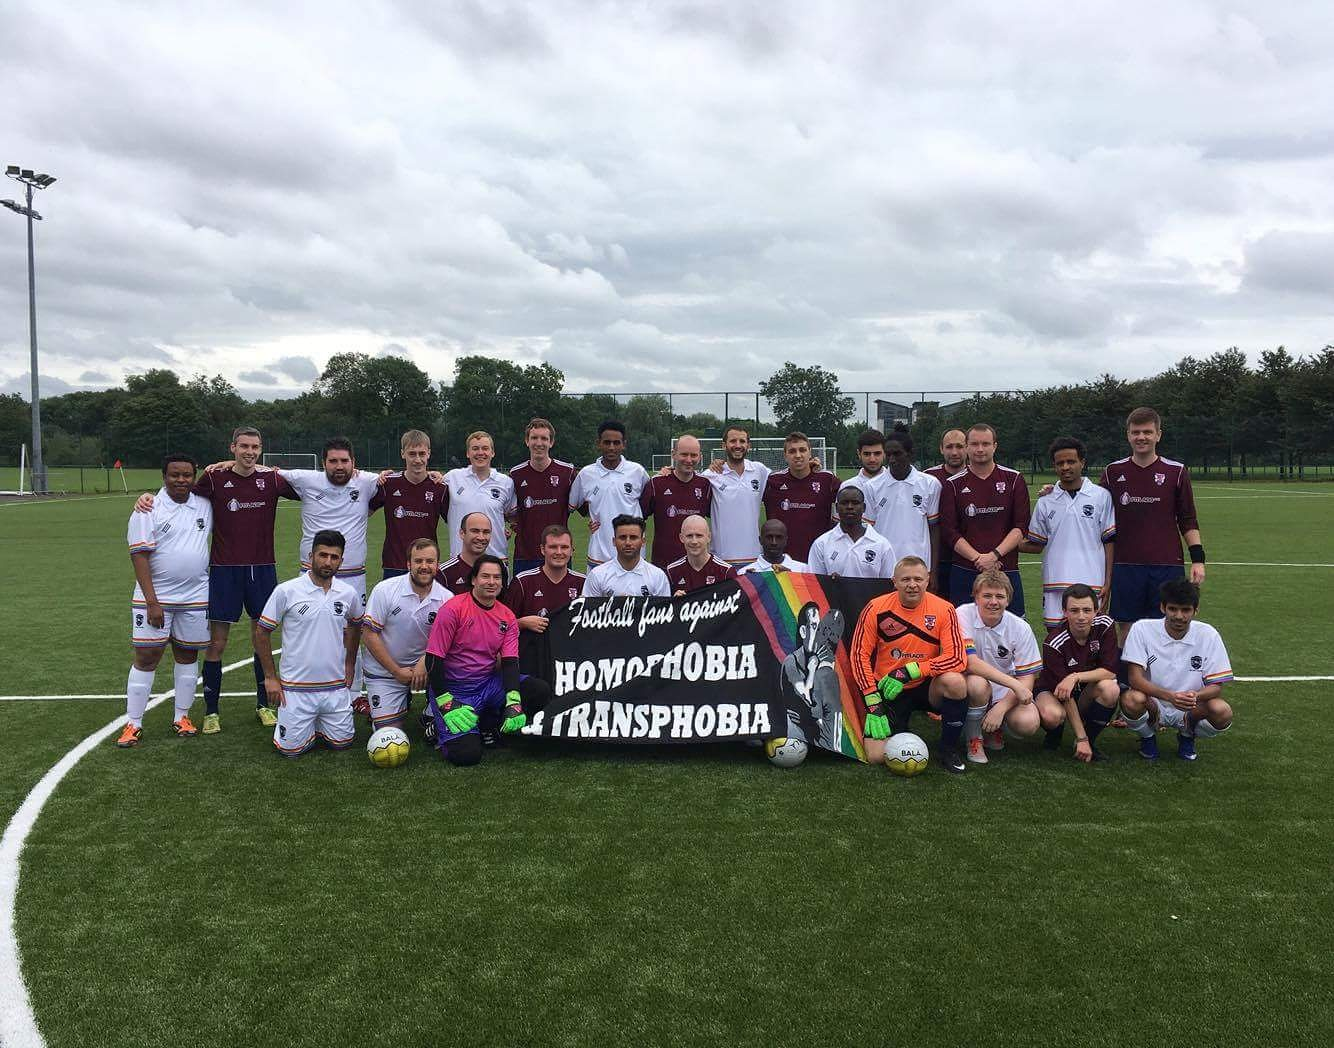 Great to play Hotscots again - Football For All, Football Against Homophobia!